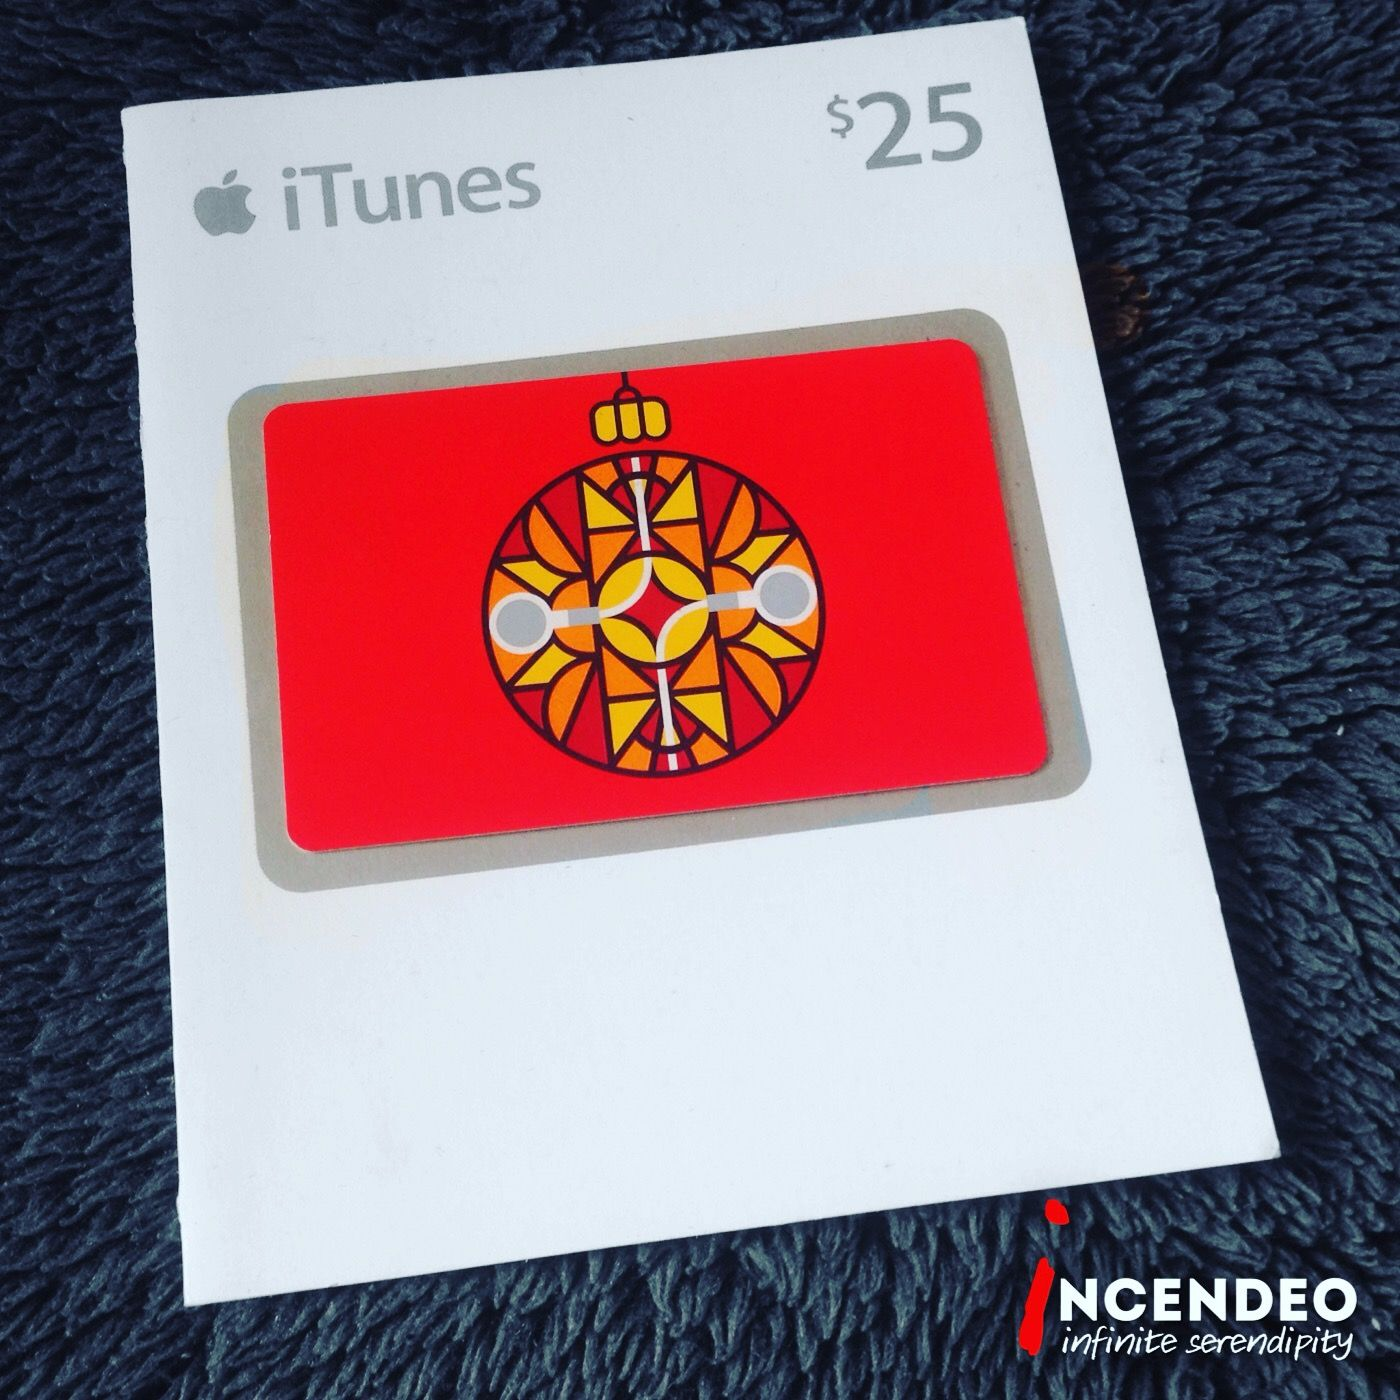 Apple iTunes 25 Limted Edition Gift Card. apple itunes